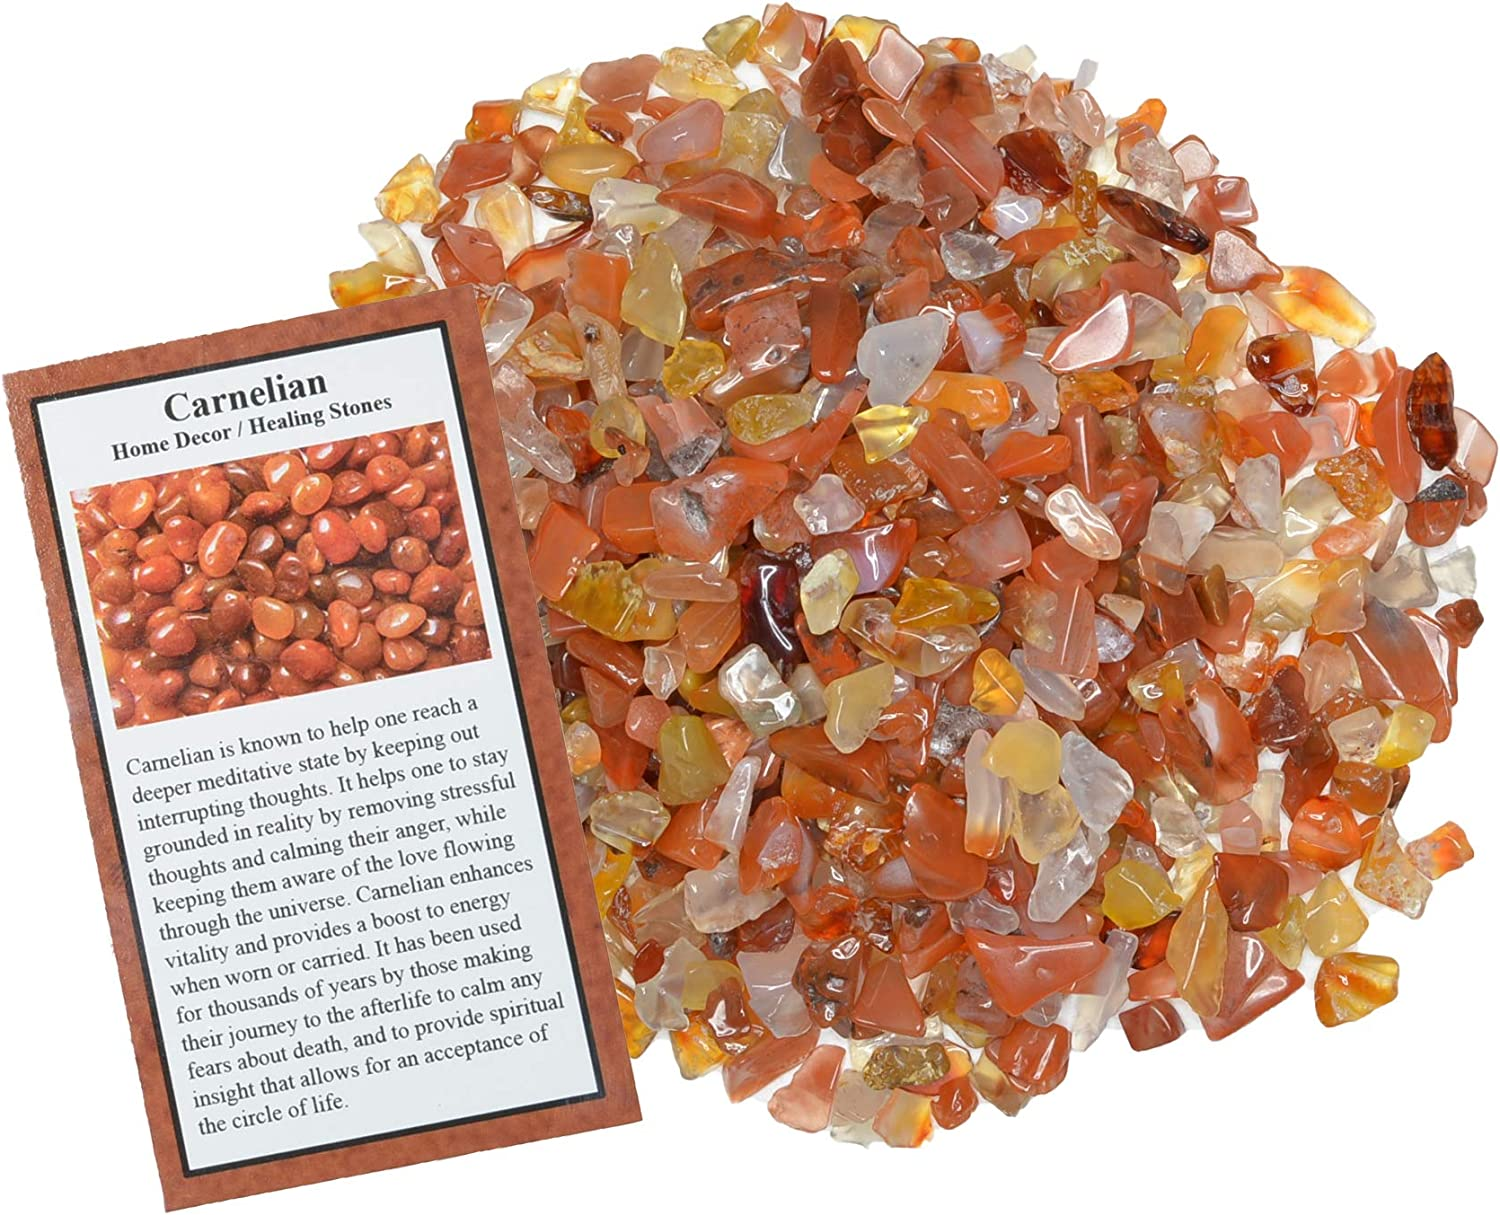 Digging Dolls: 3 lbs of Tumbled Chip - Max 53% OFF Polished Fort Worth Mall Carnelian Stones